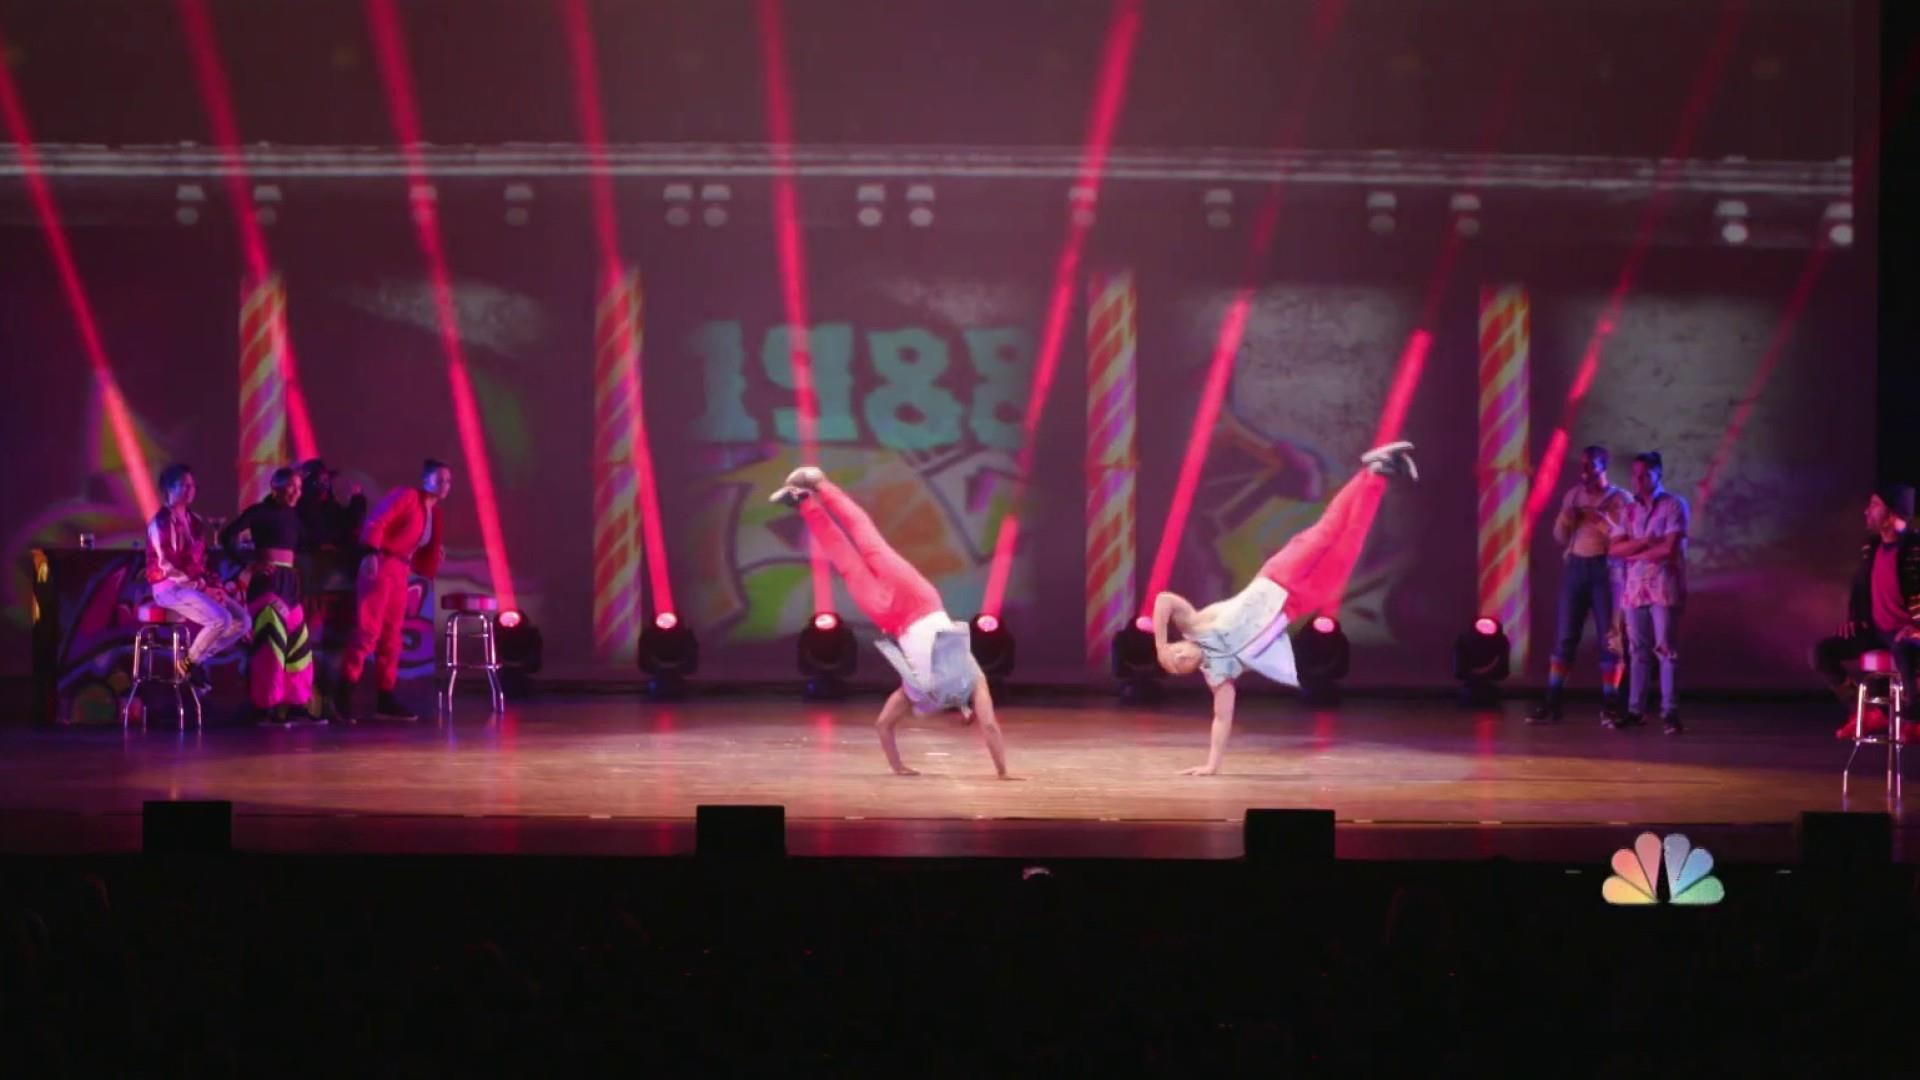 The Hip Hop Nutcracker adds a new twist to the classic ballet